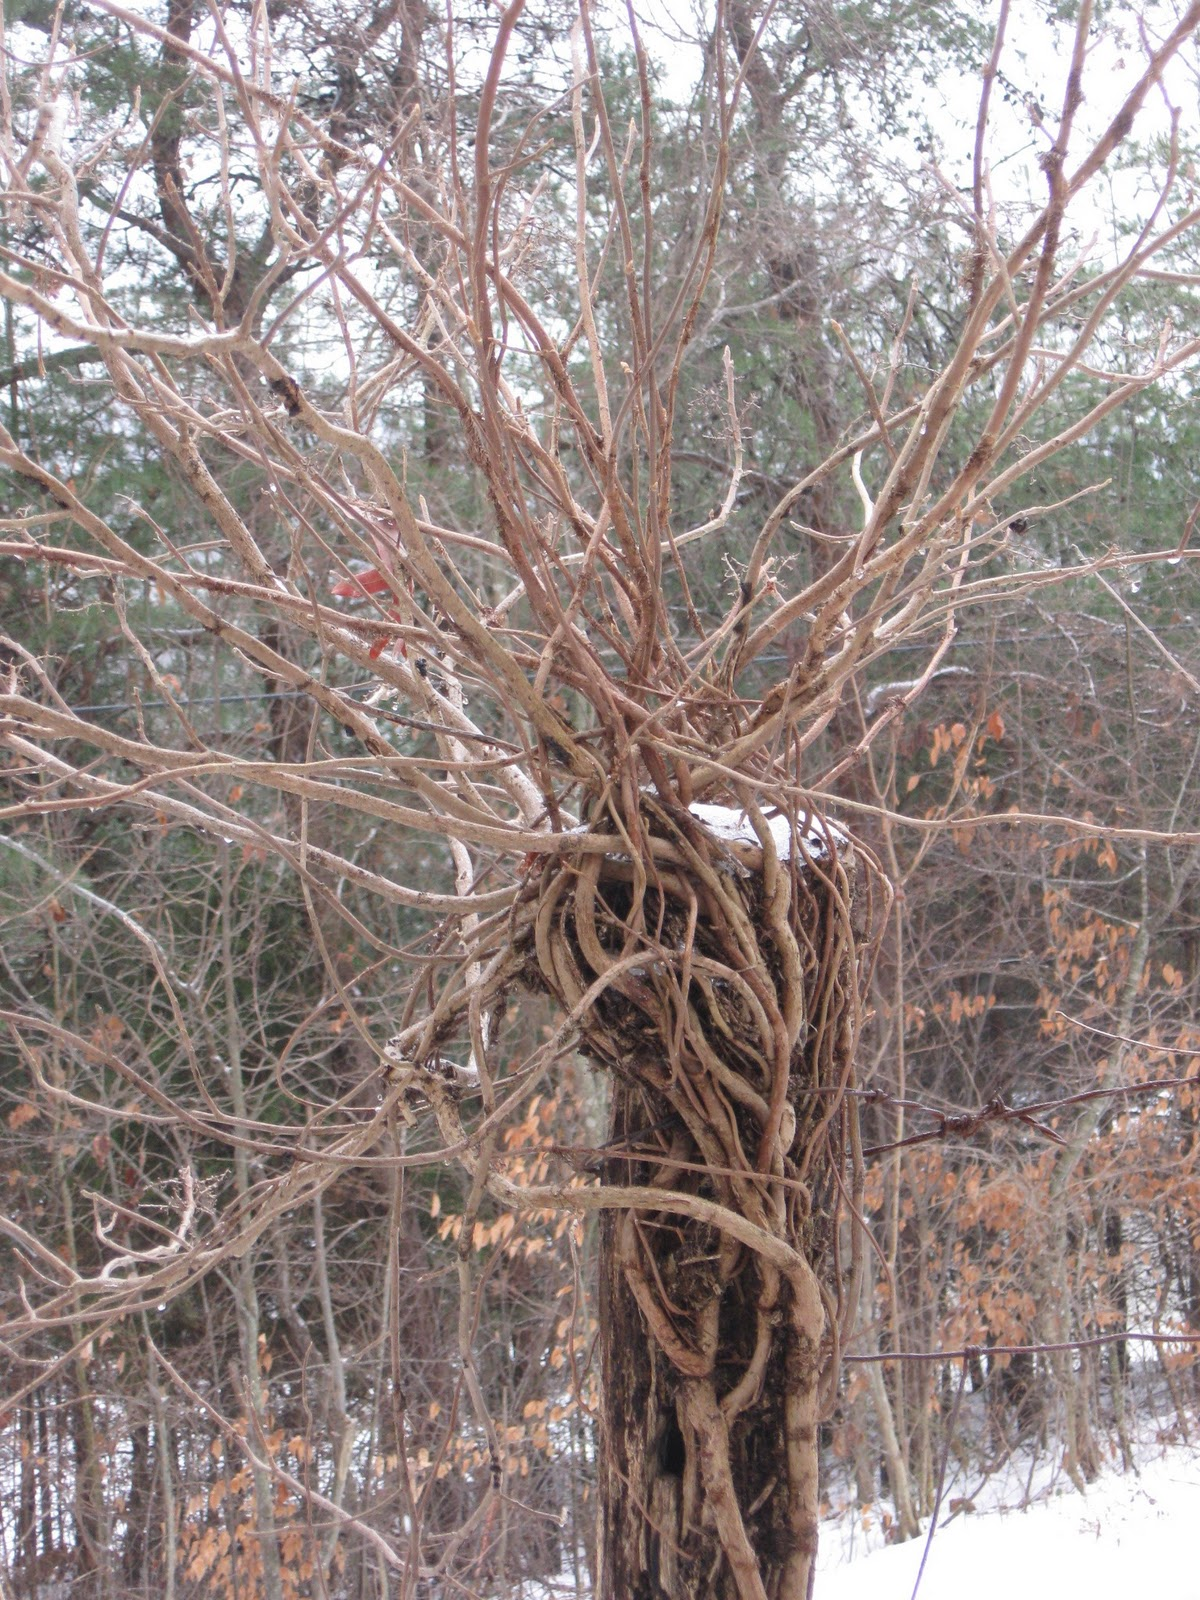 What does poison ivy look like in the winter